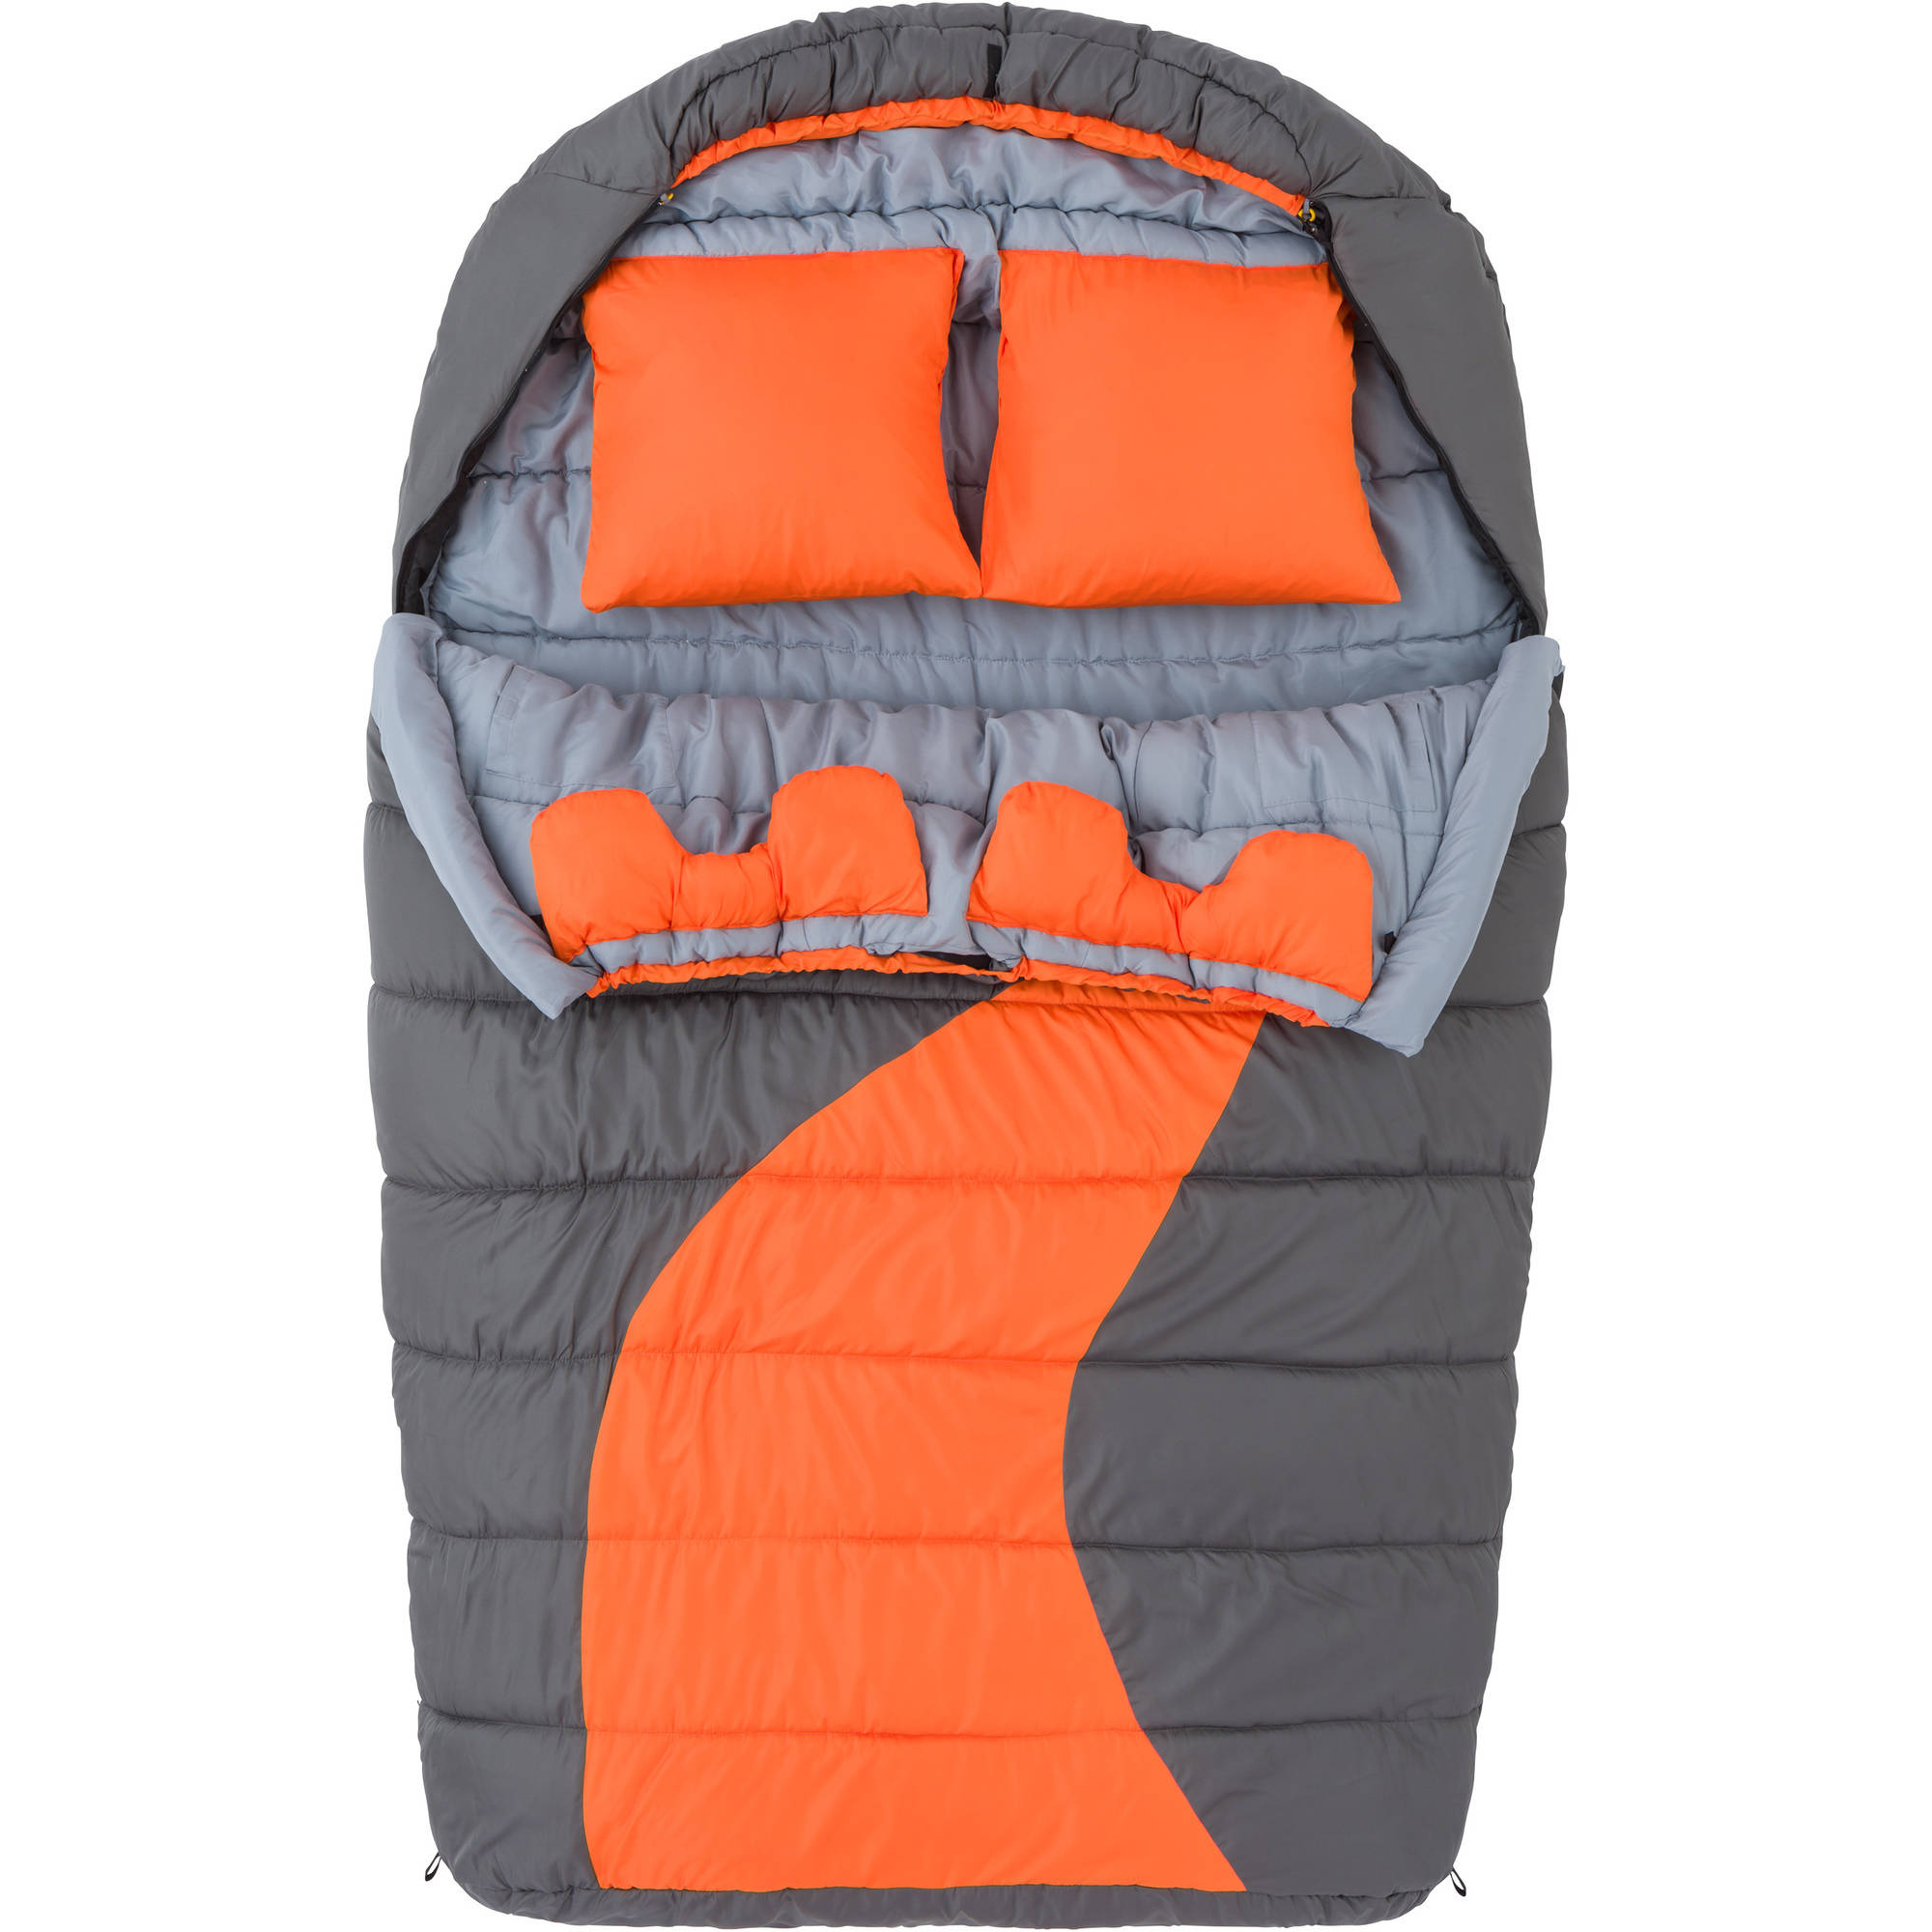 Ozark Trail 20F degree Cold Weather Double Mummy Sleeping Bag by